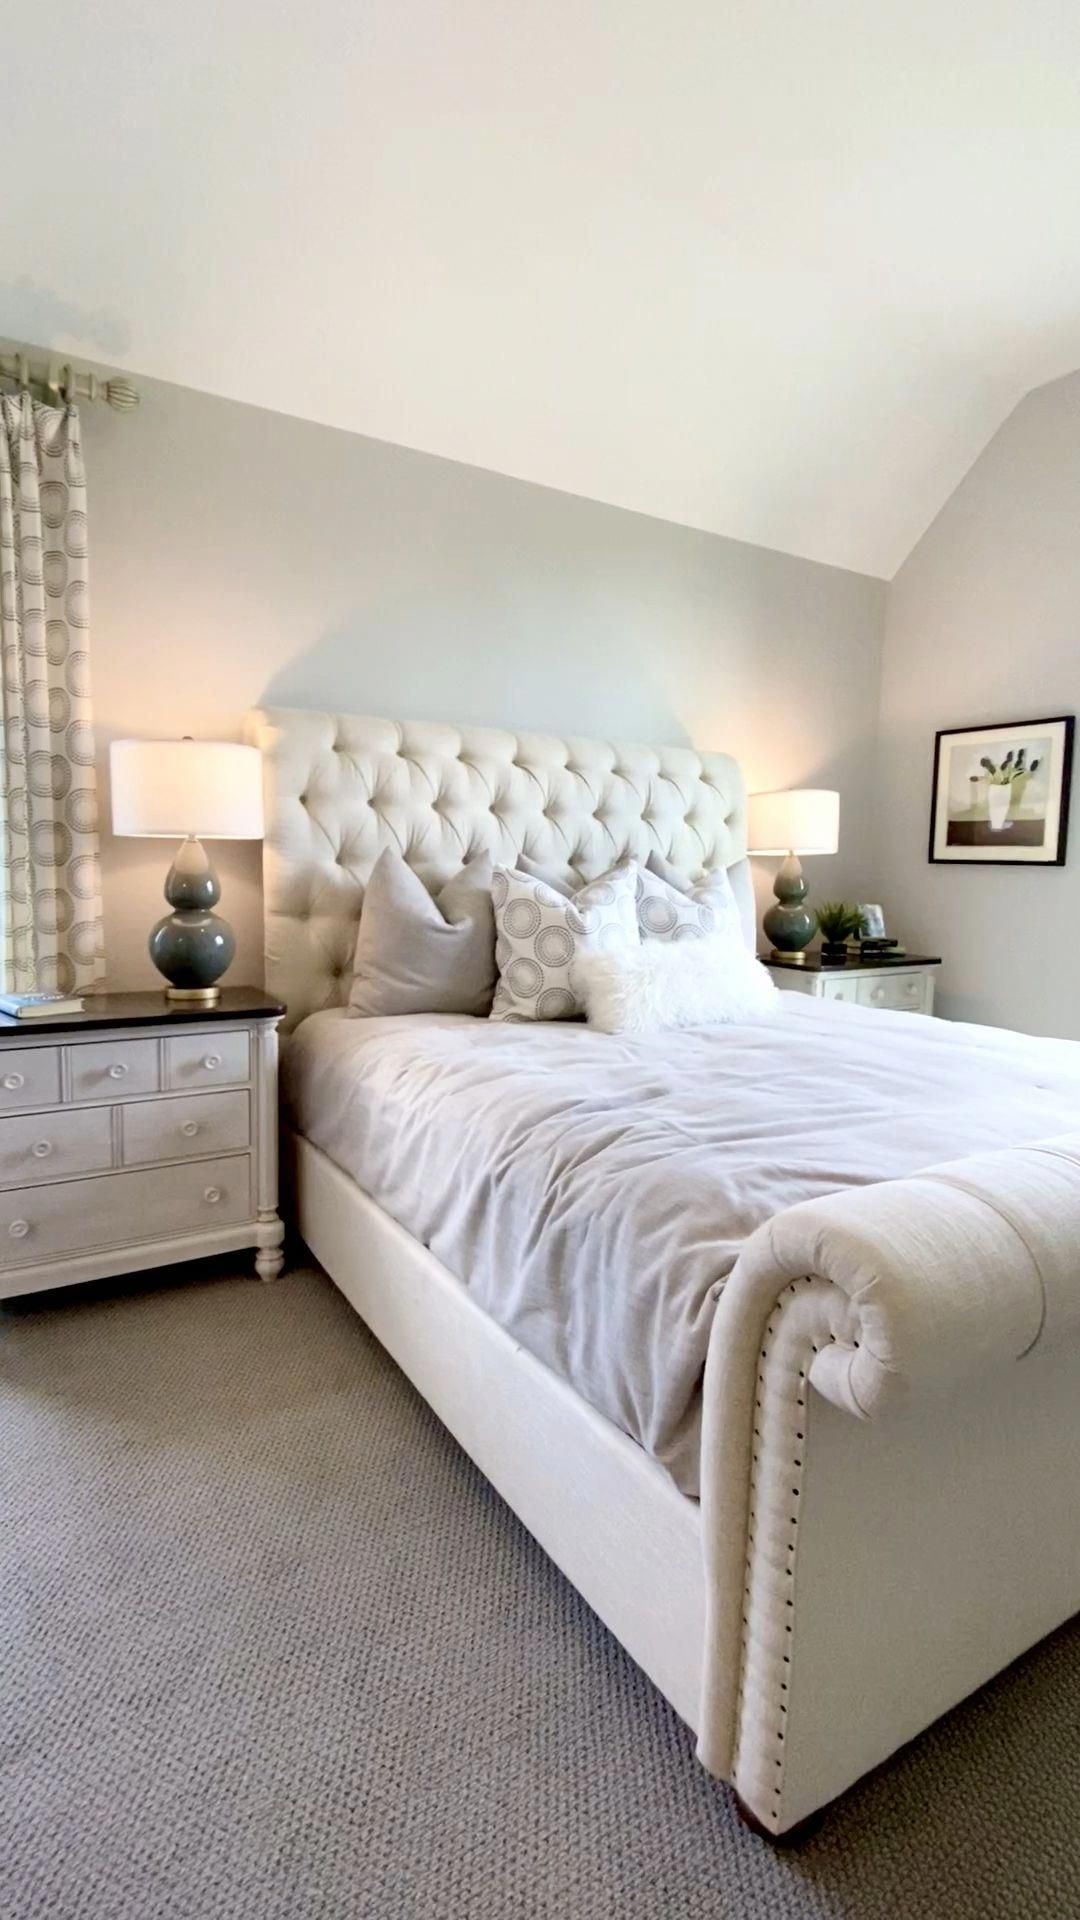 Bedroom With Tufted Headboard On An Upholstered Sleigh Bed Click To See More Model Home Dec In 2020 Upholstered Bed Master Bedroom Redecorate Bedroom Bedroom Interior Home bedroom makeover diy upholstered